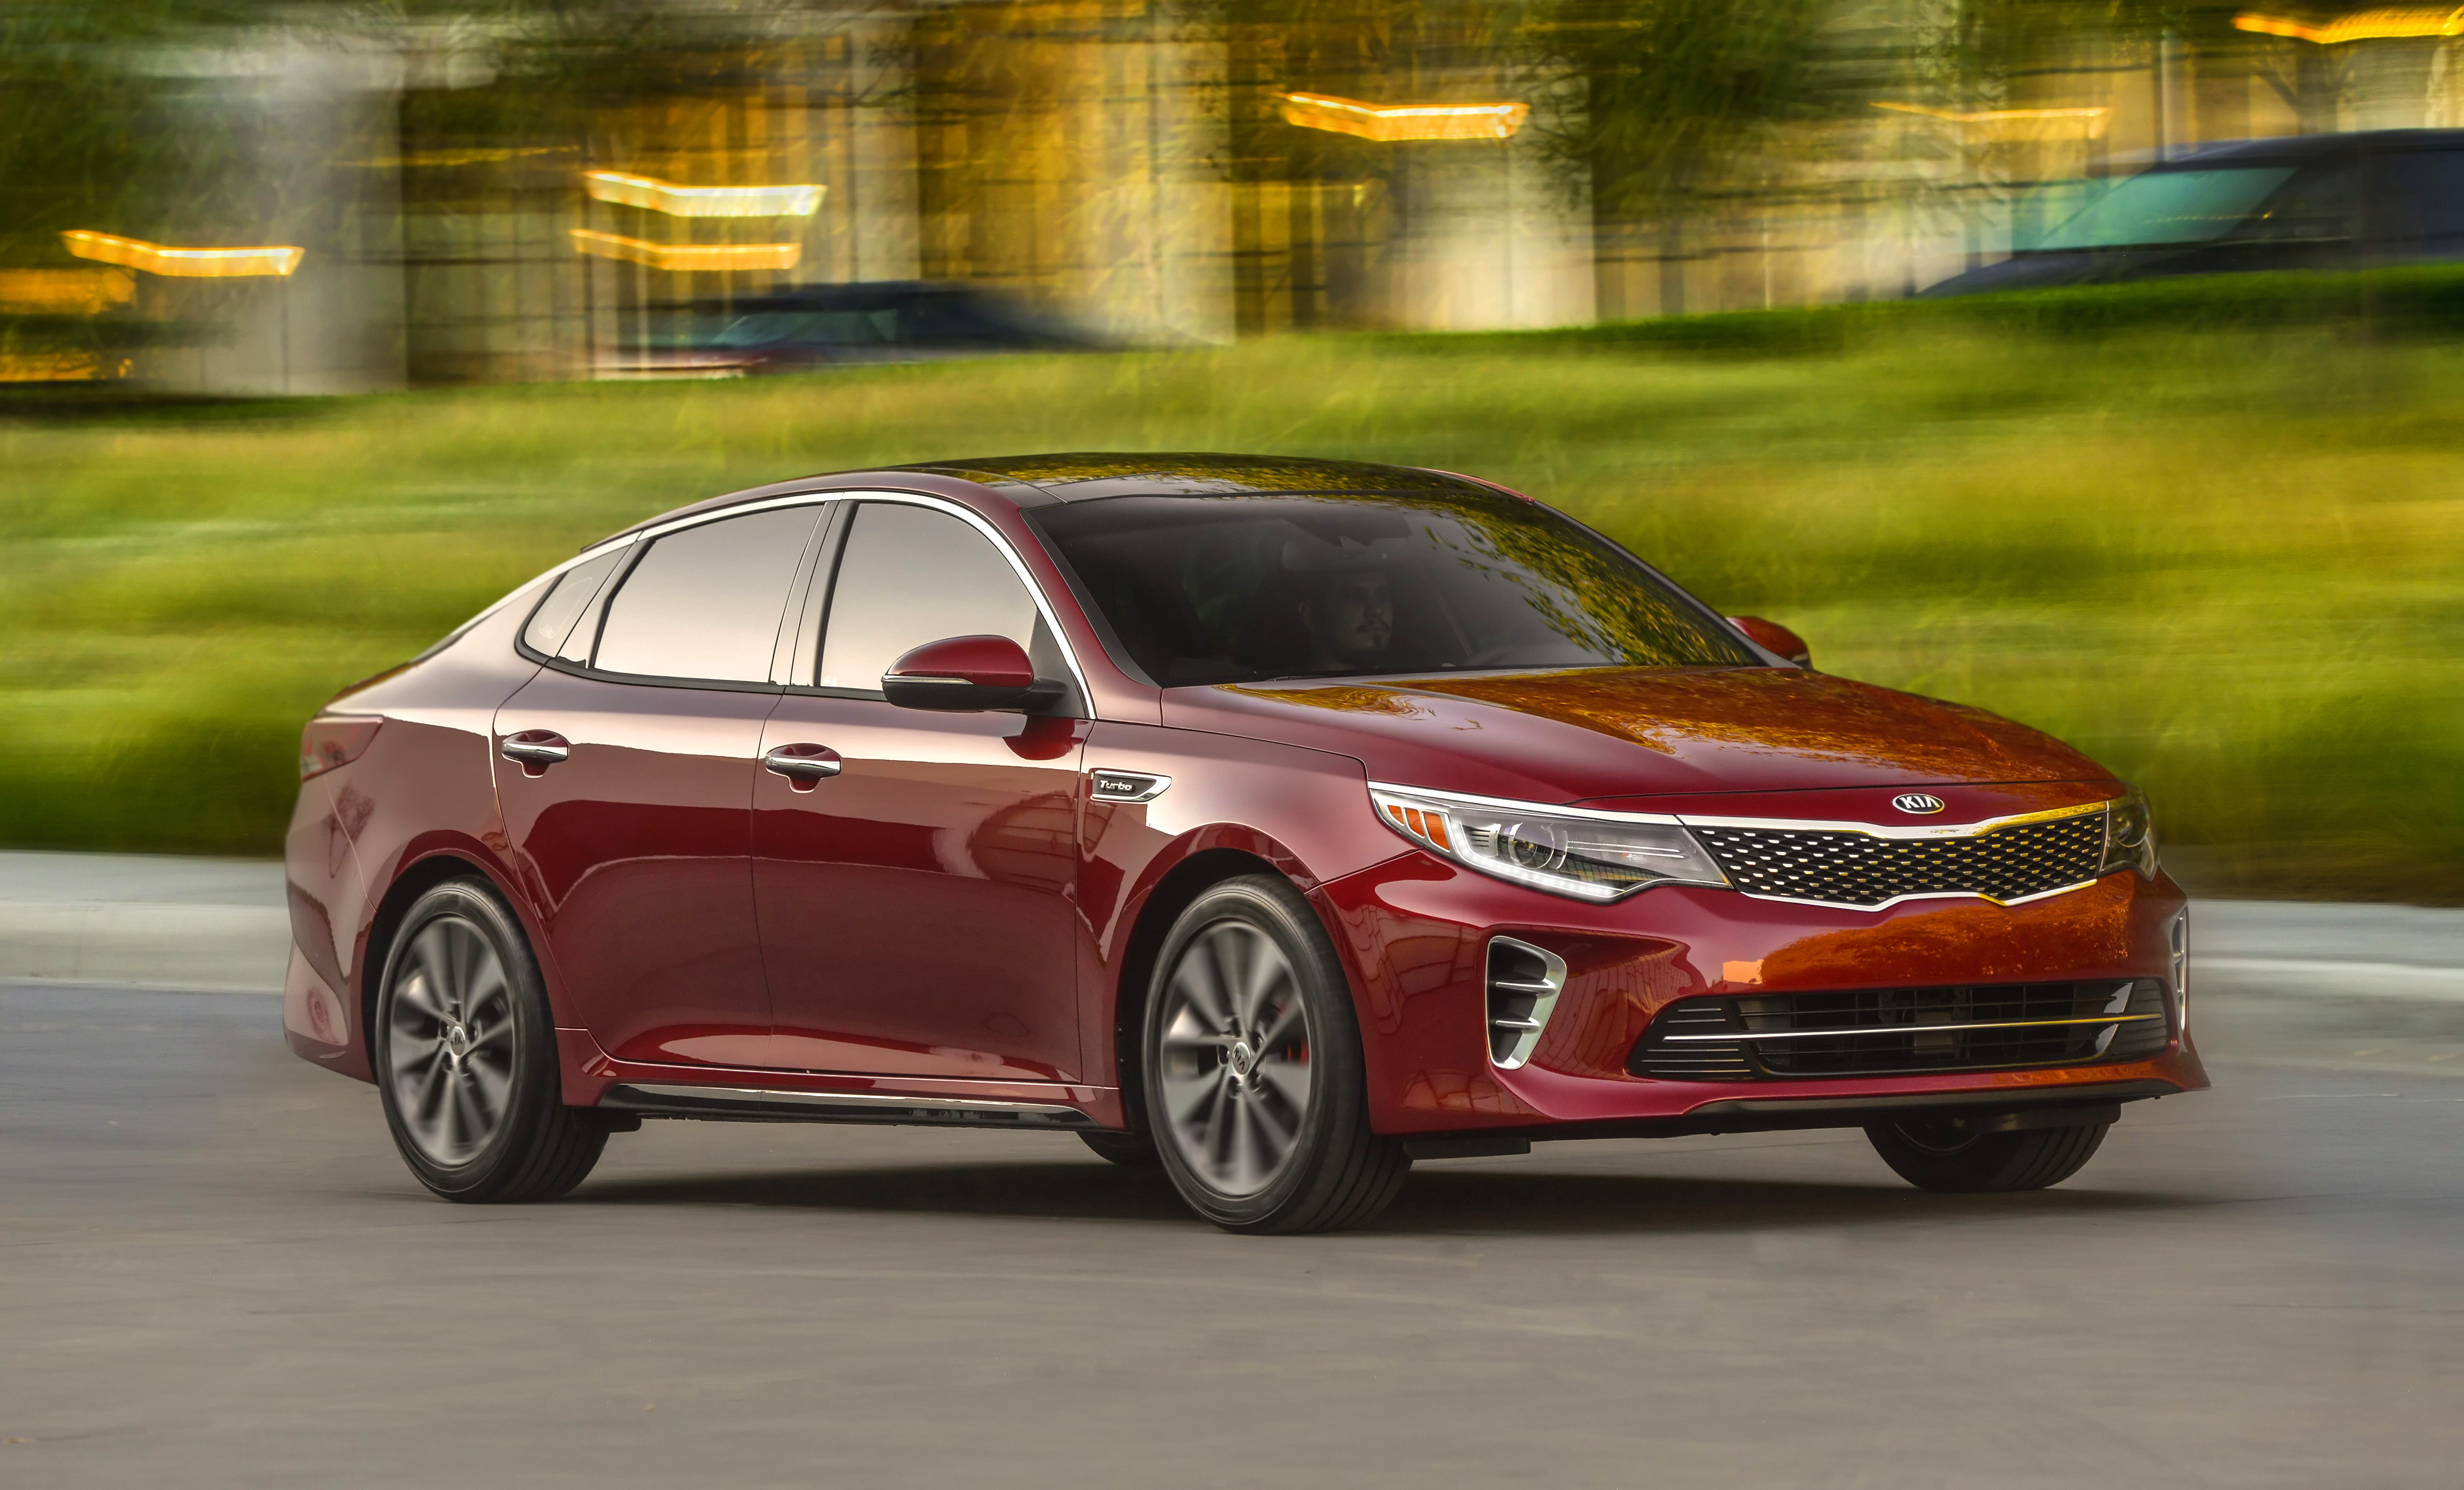 people best set weatherproof optima badge and with logo get was gdi logos re kia legit a seen ex wondering are can forum where that k i ve hmeaqgd the of heard